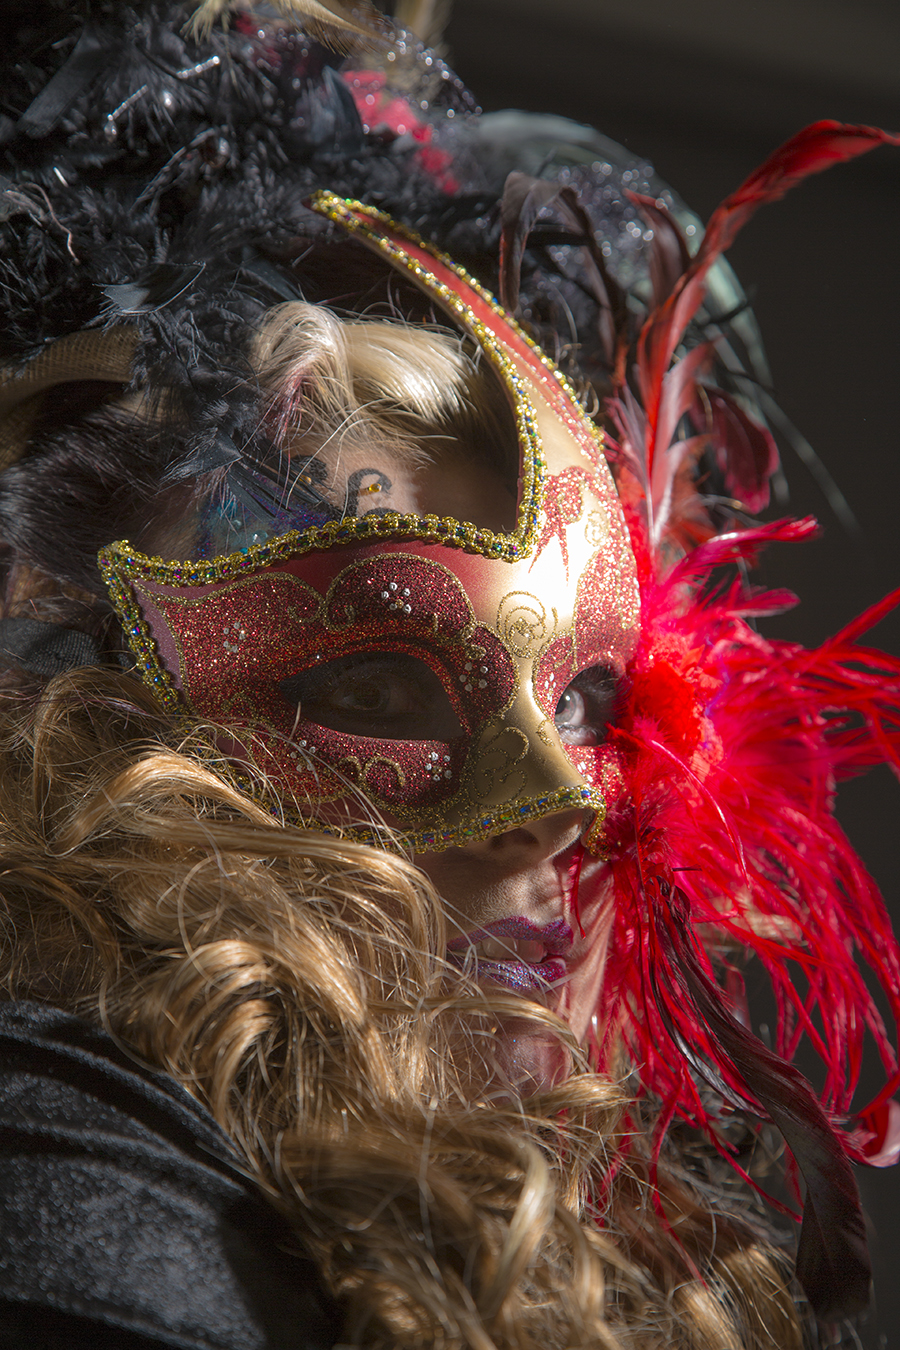 A Fantasy Affair @ Body Couture Studios 3 / Photography by GaryMac Photography / Uploaded 13th May 2013 @ 12:39 AM